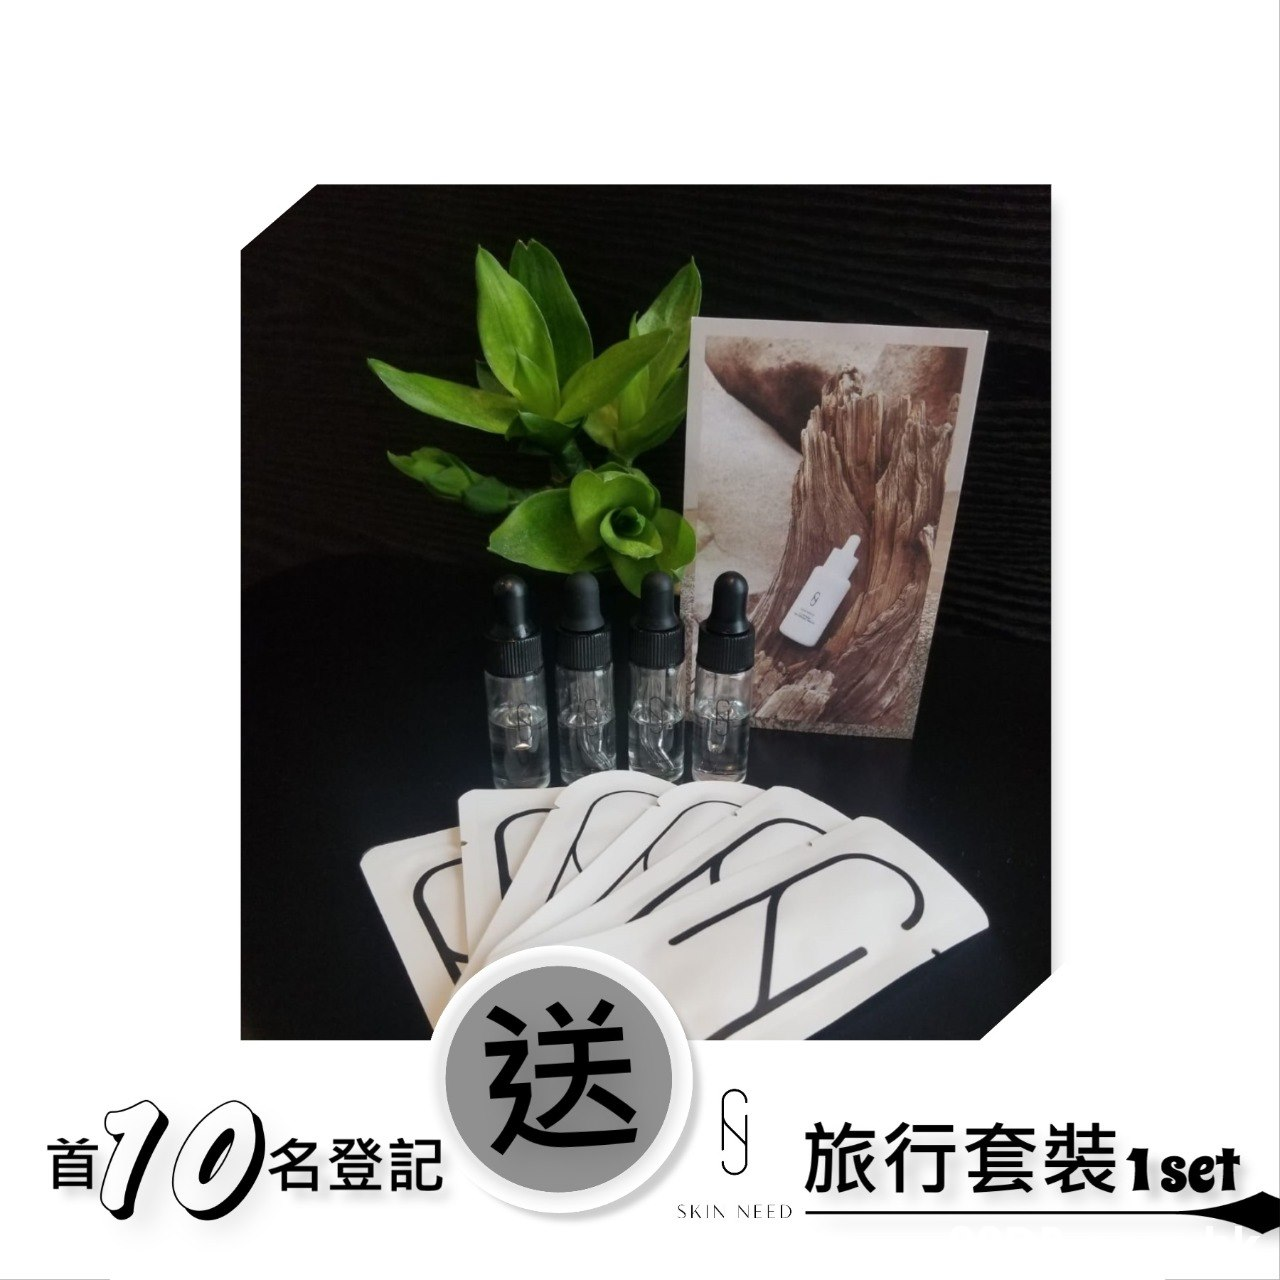 送 10 S 旅行套裝1set 首/の名登記 SKIN NEED  Product,Leaf,Flowerpot,Font,Tree